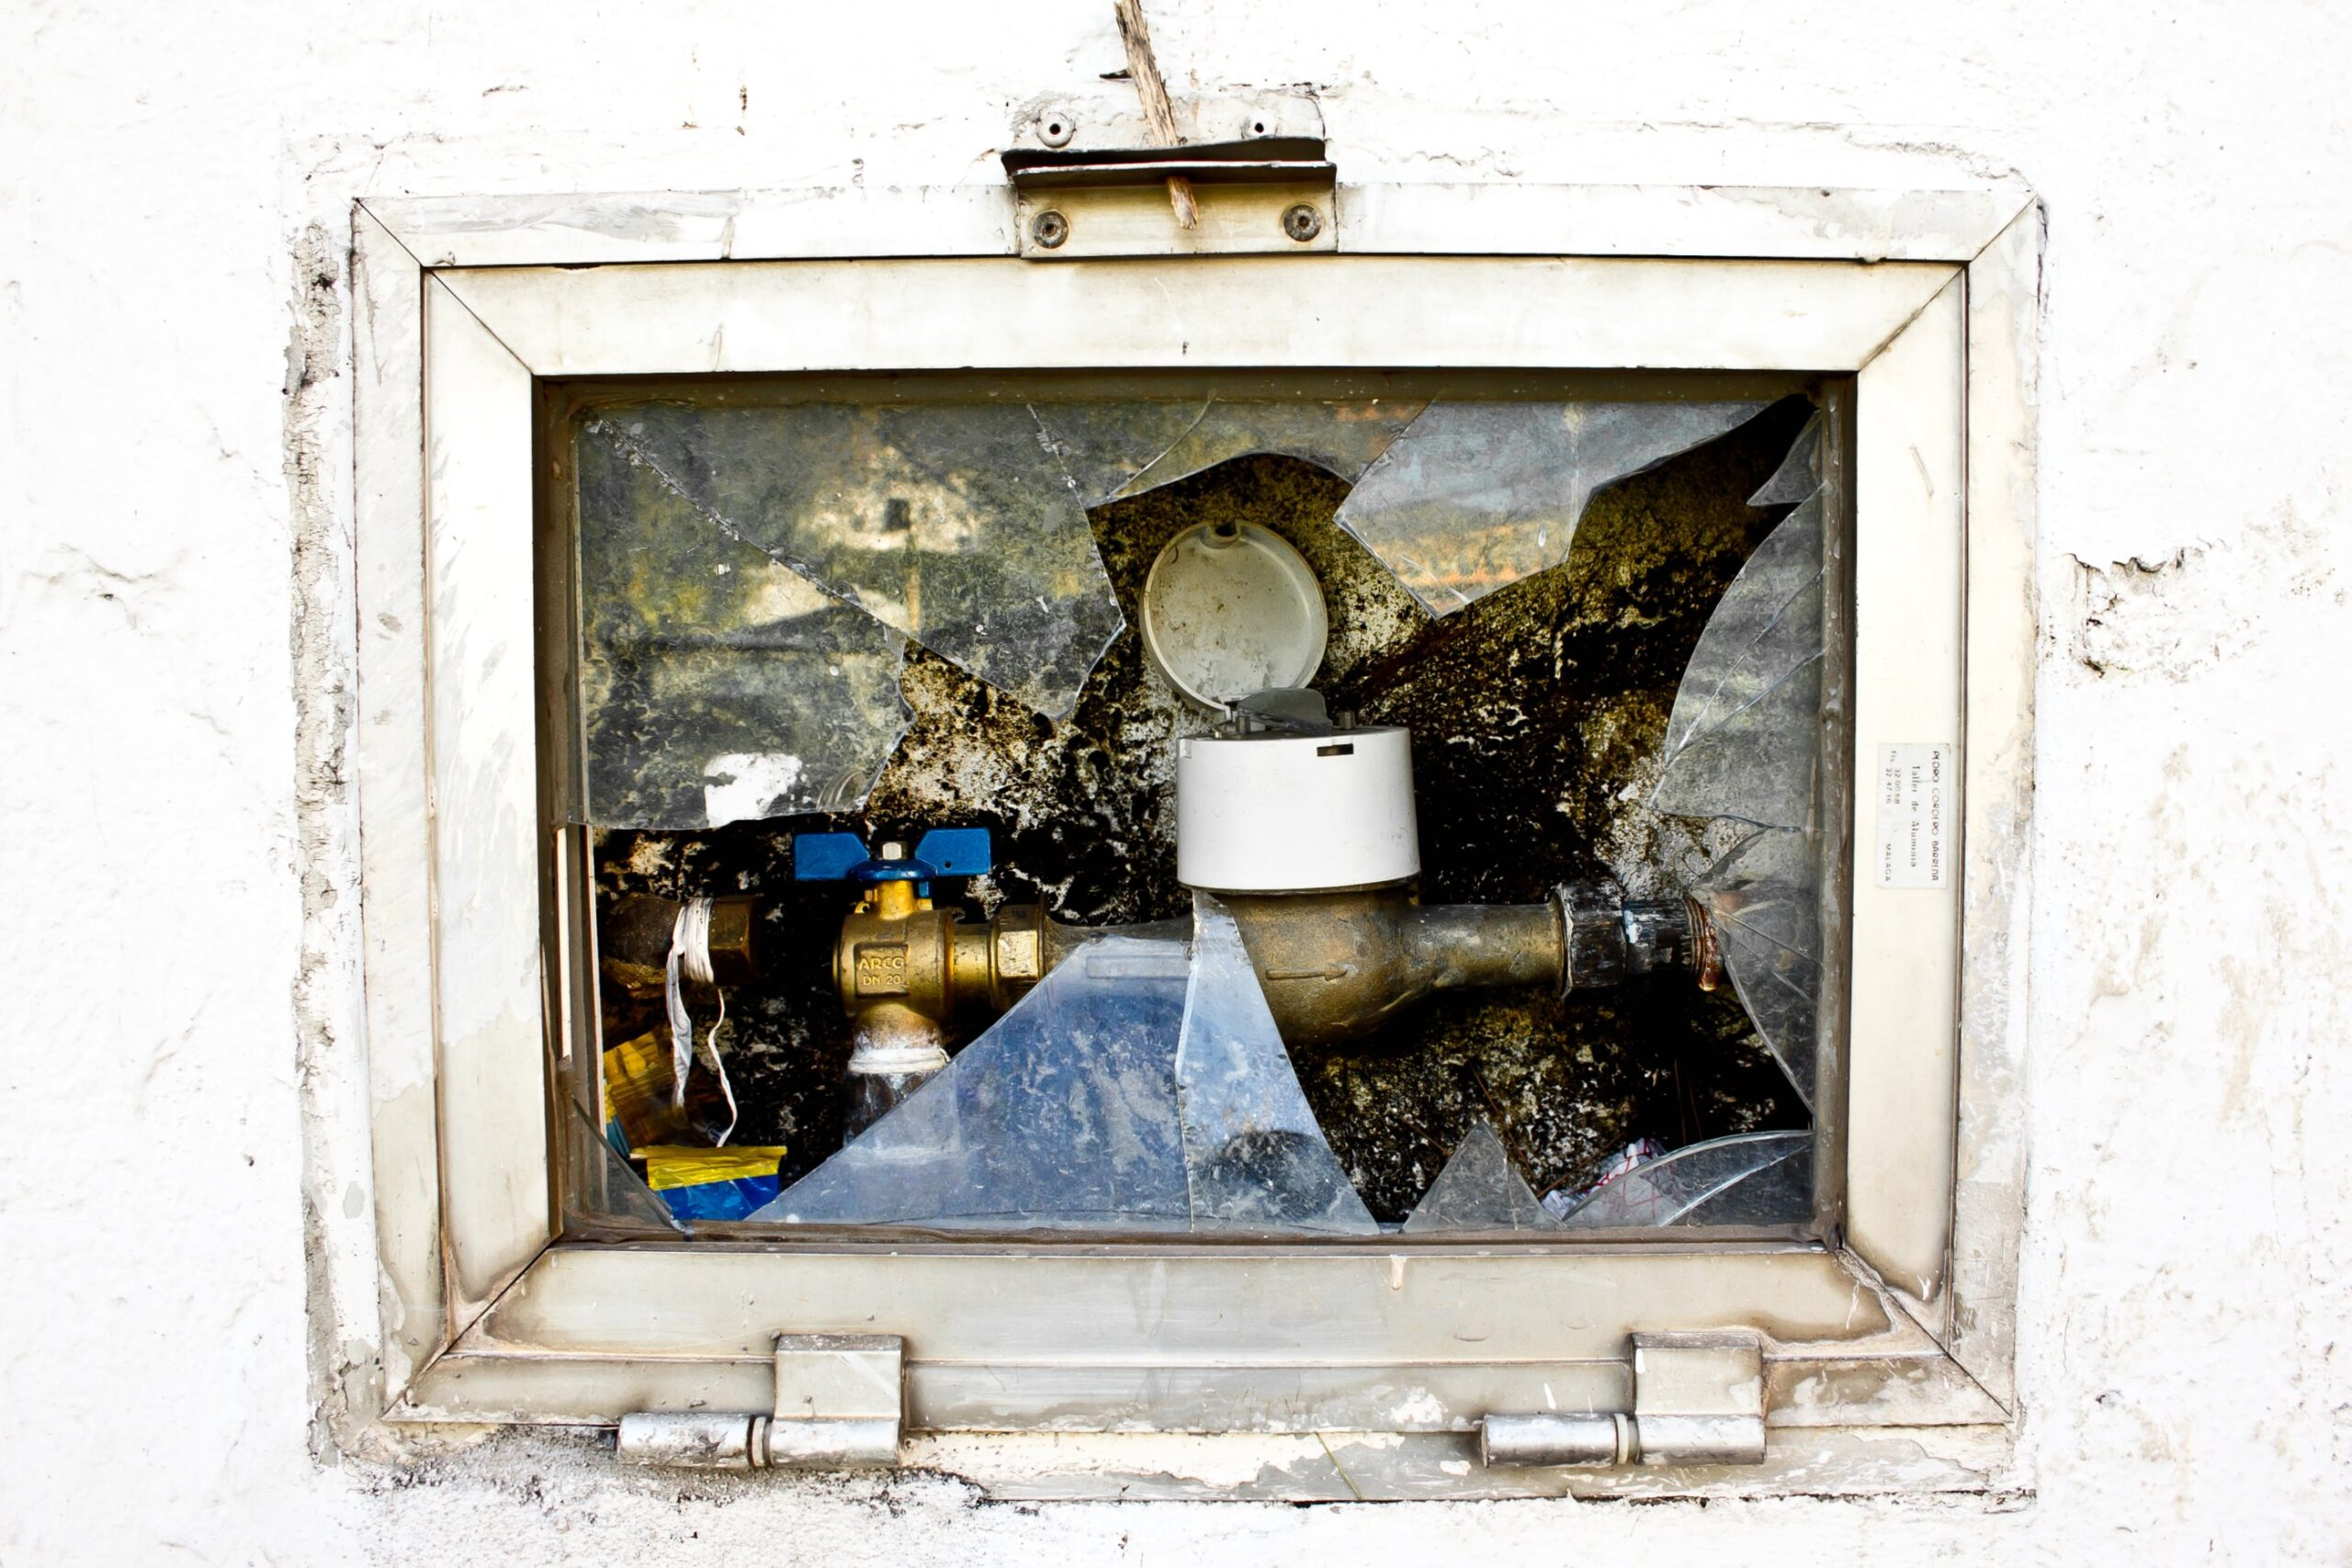 Image of objects under shards of broken glass.